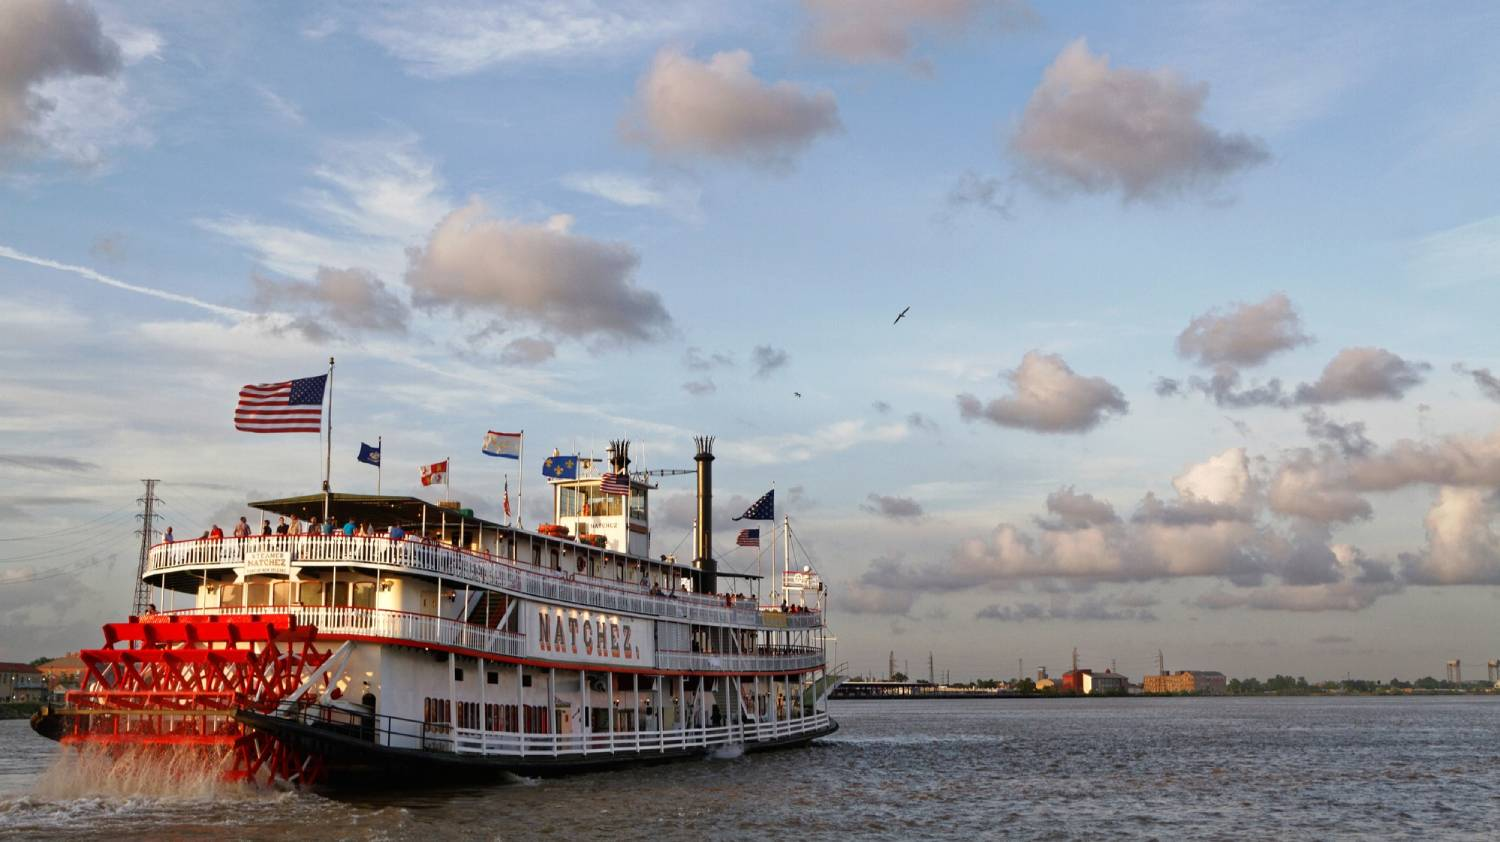 Steamboat Natchez - Things To Do In New Orleans